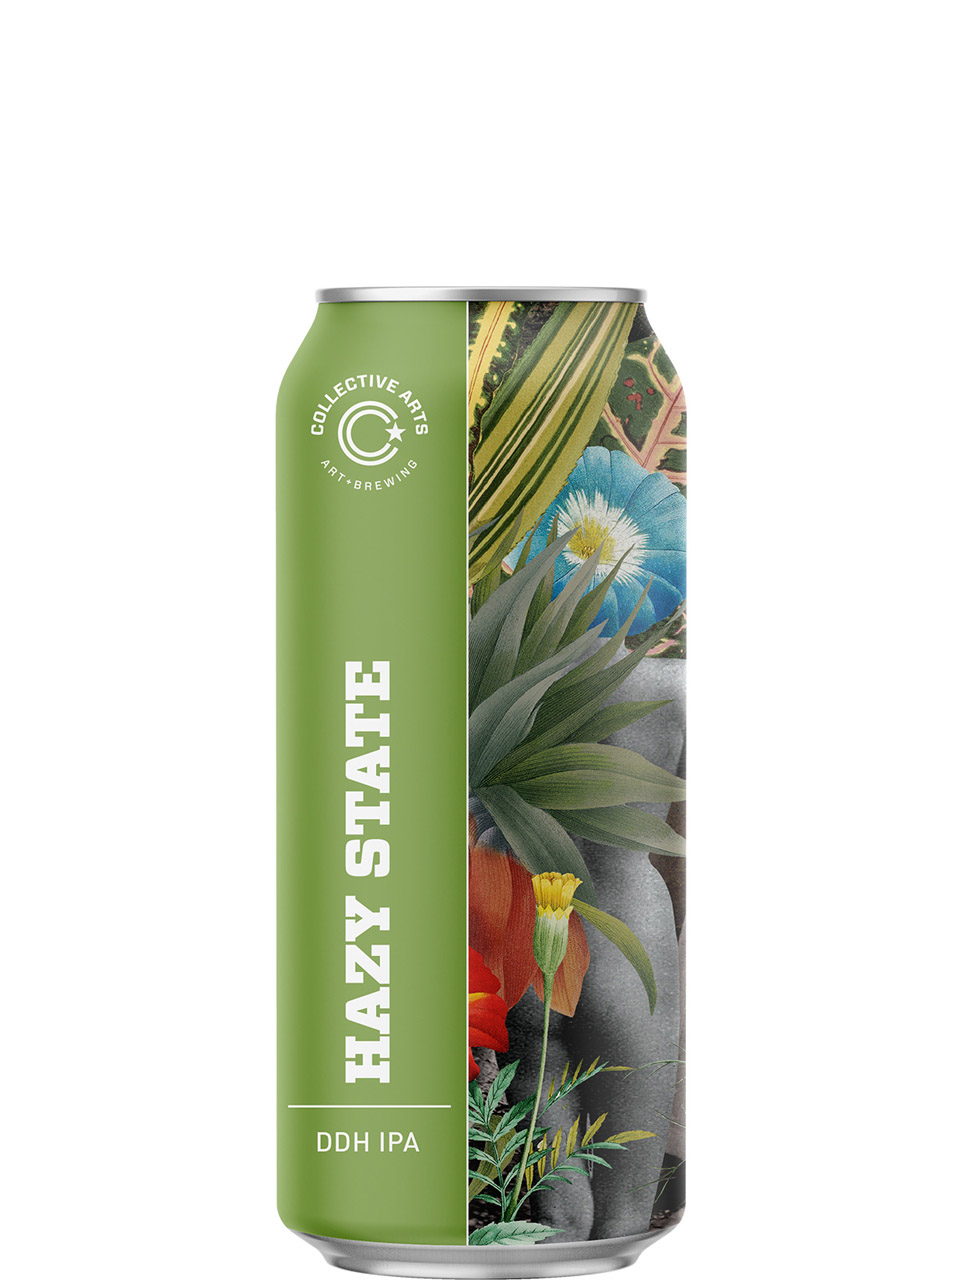 Collective Arts Hazy State Double-Hopped IPA 473ml